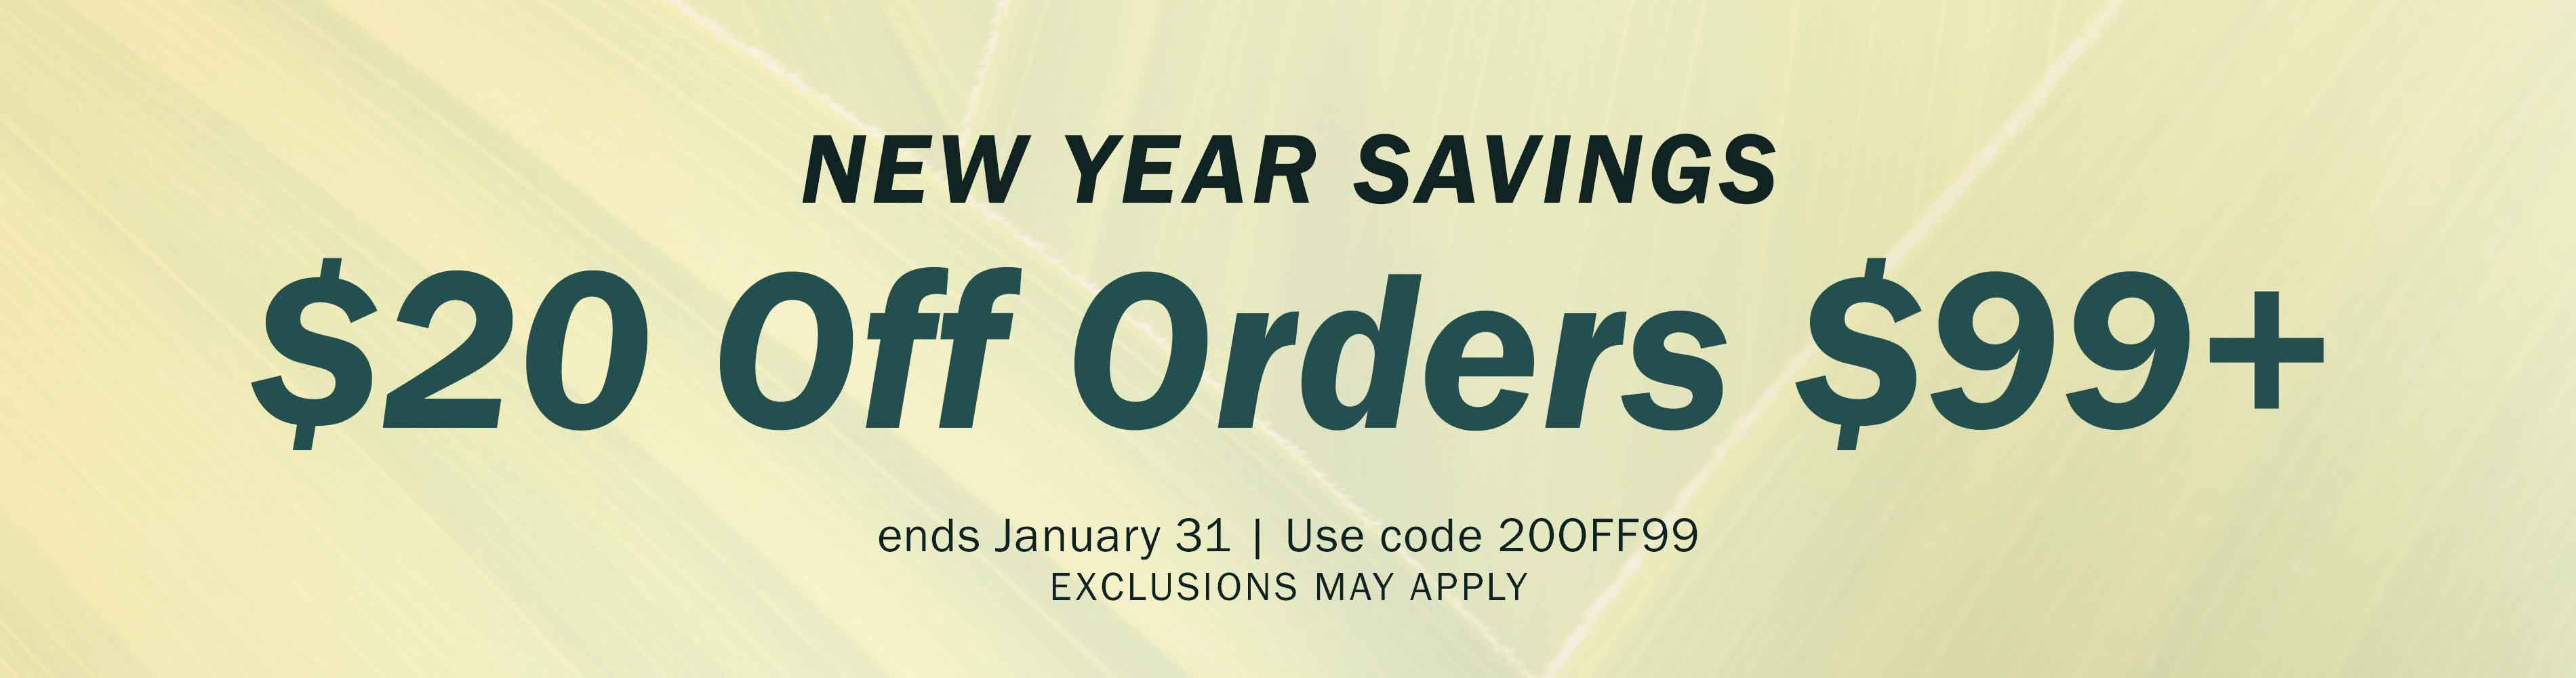 Extended! $20 off orders $99 or more through January 31 with code 20OFF99. Exclusions may apply.